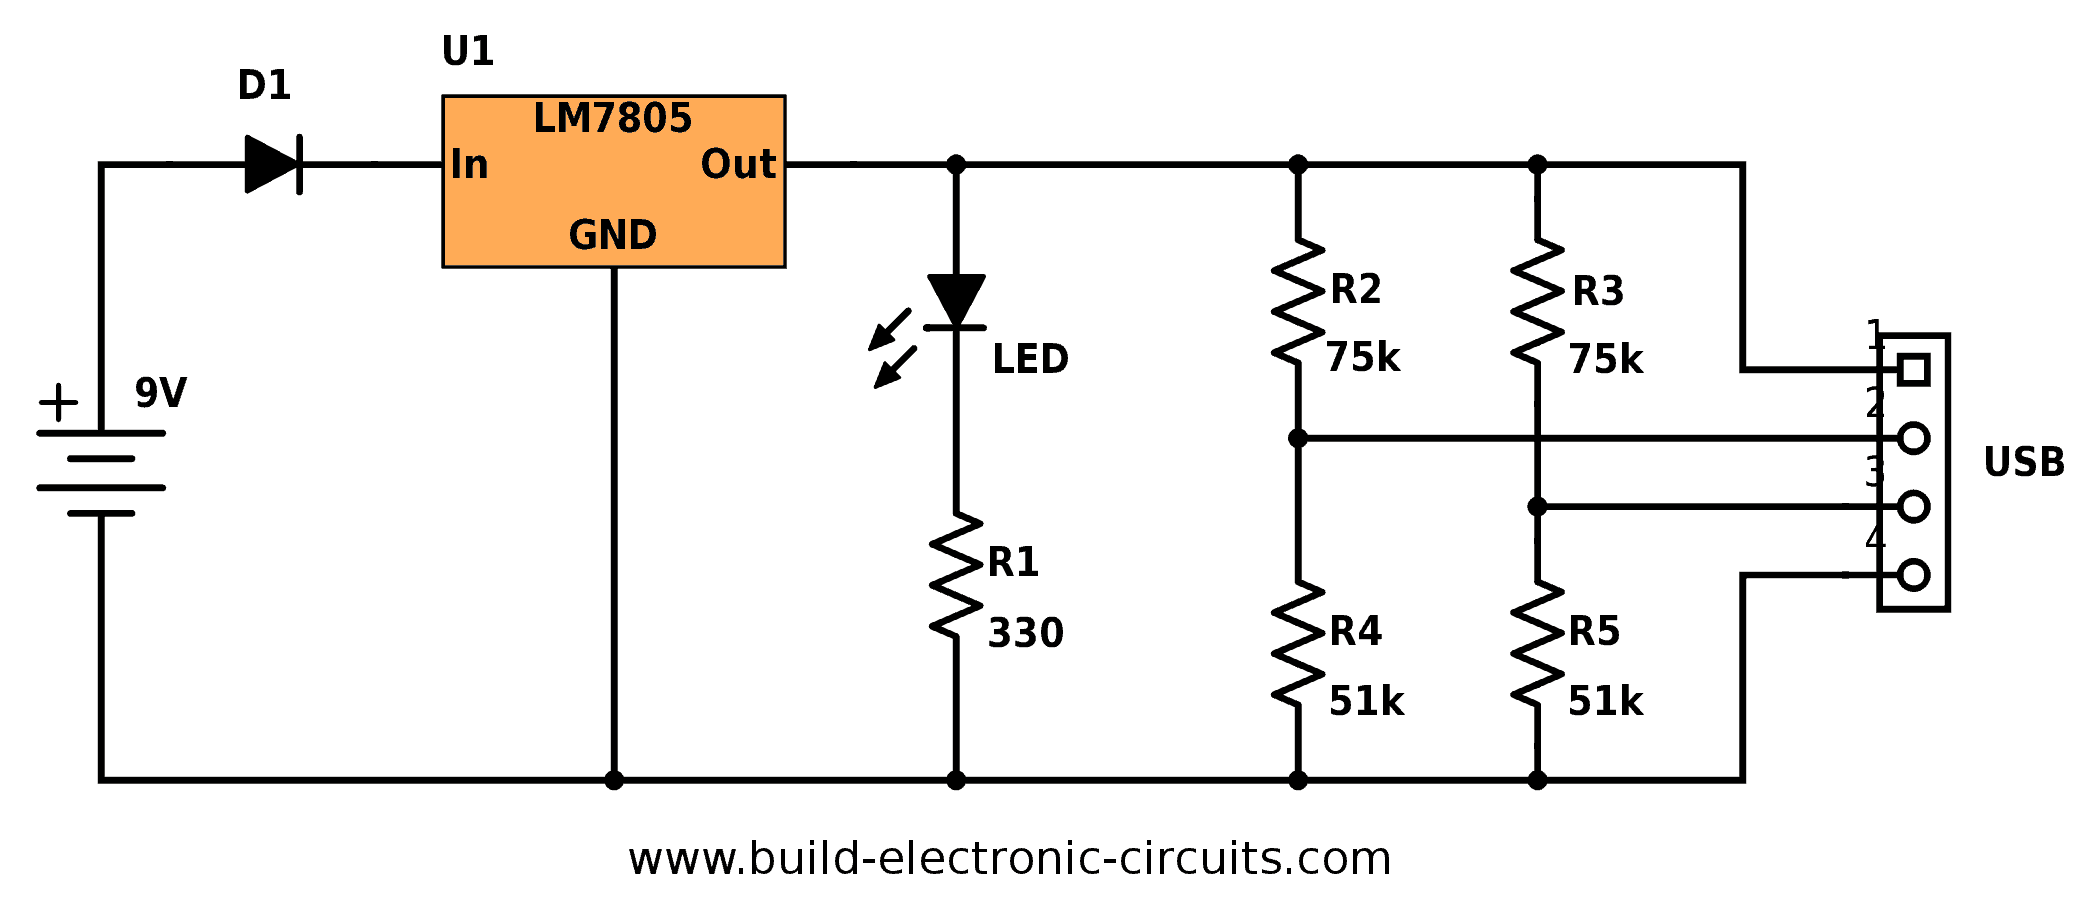 Portable USB Charger circuit diagram values portable usb charger circuit build electronic circuits cell phone charger wiring diagram at aneh.co